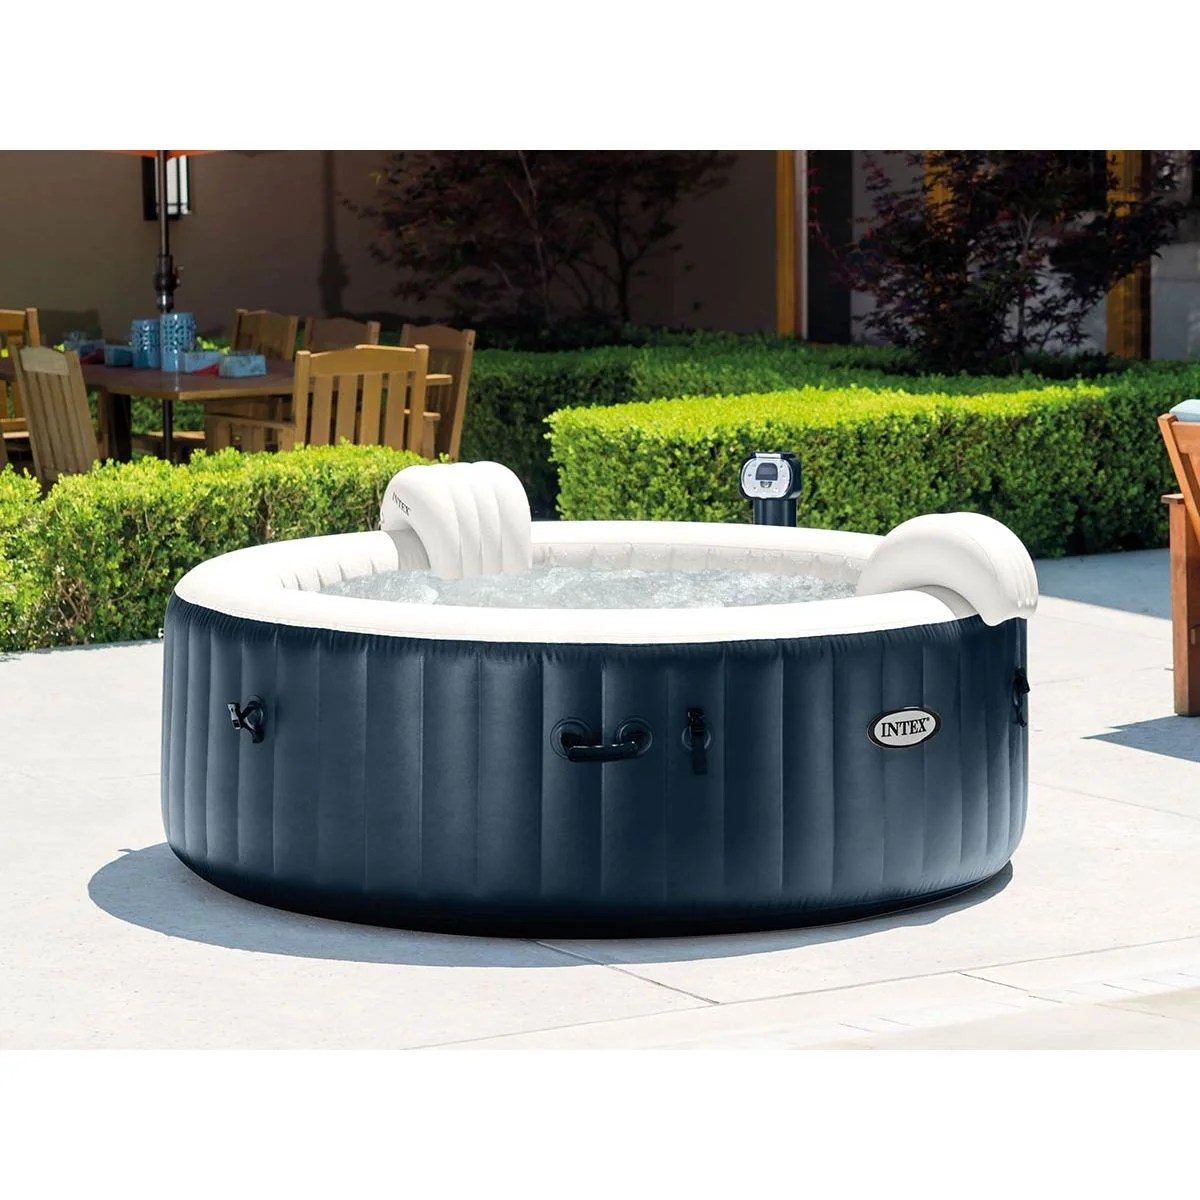 Eclairage Exterieur Oogarden Jacuzzi Intex 6 Places